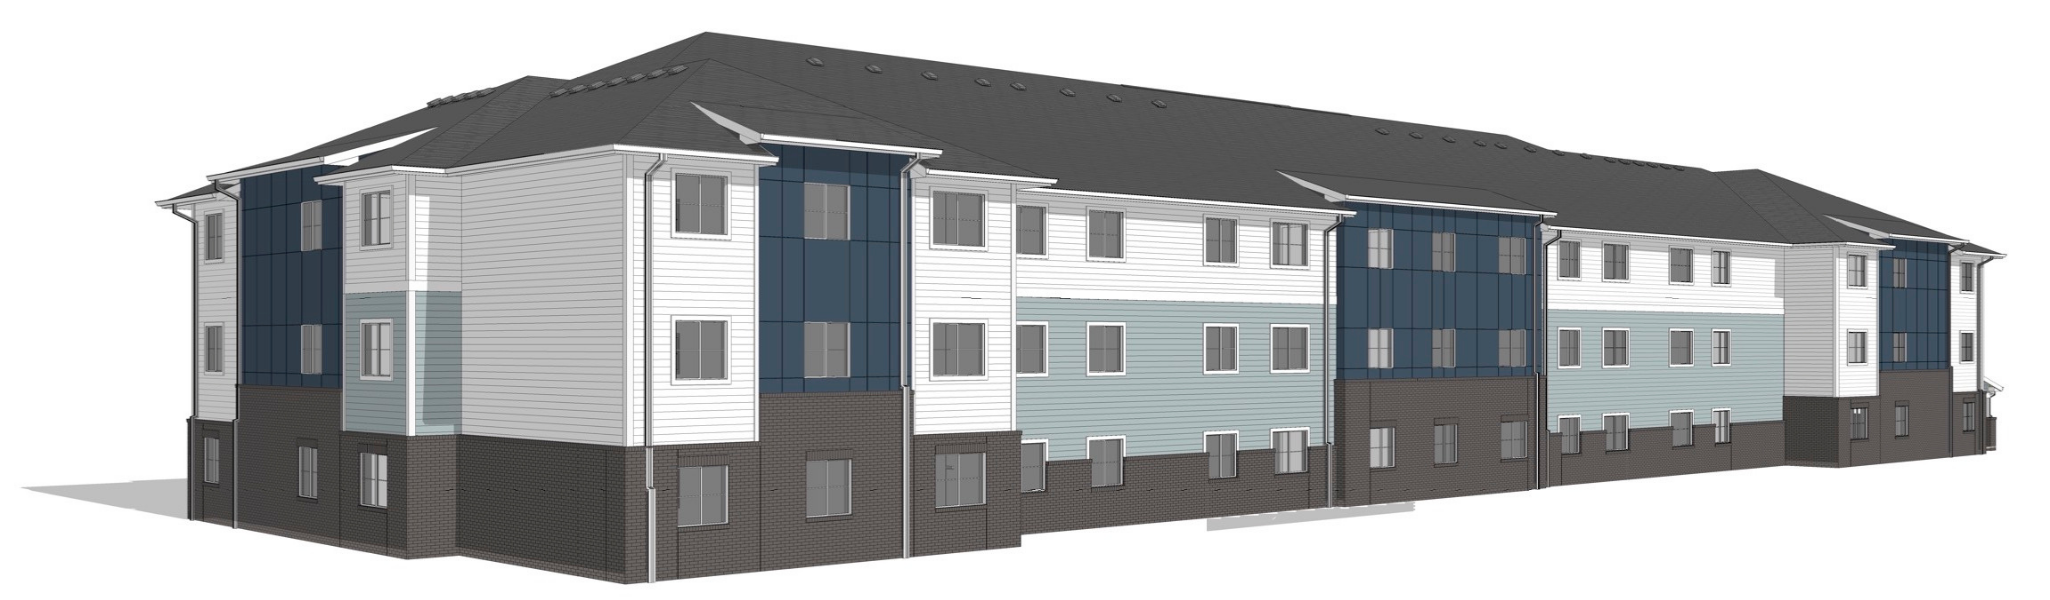 heartland heights affordable housing